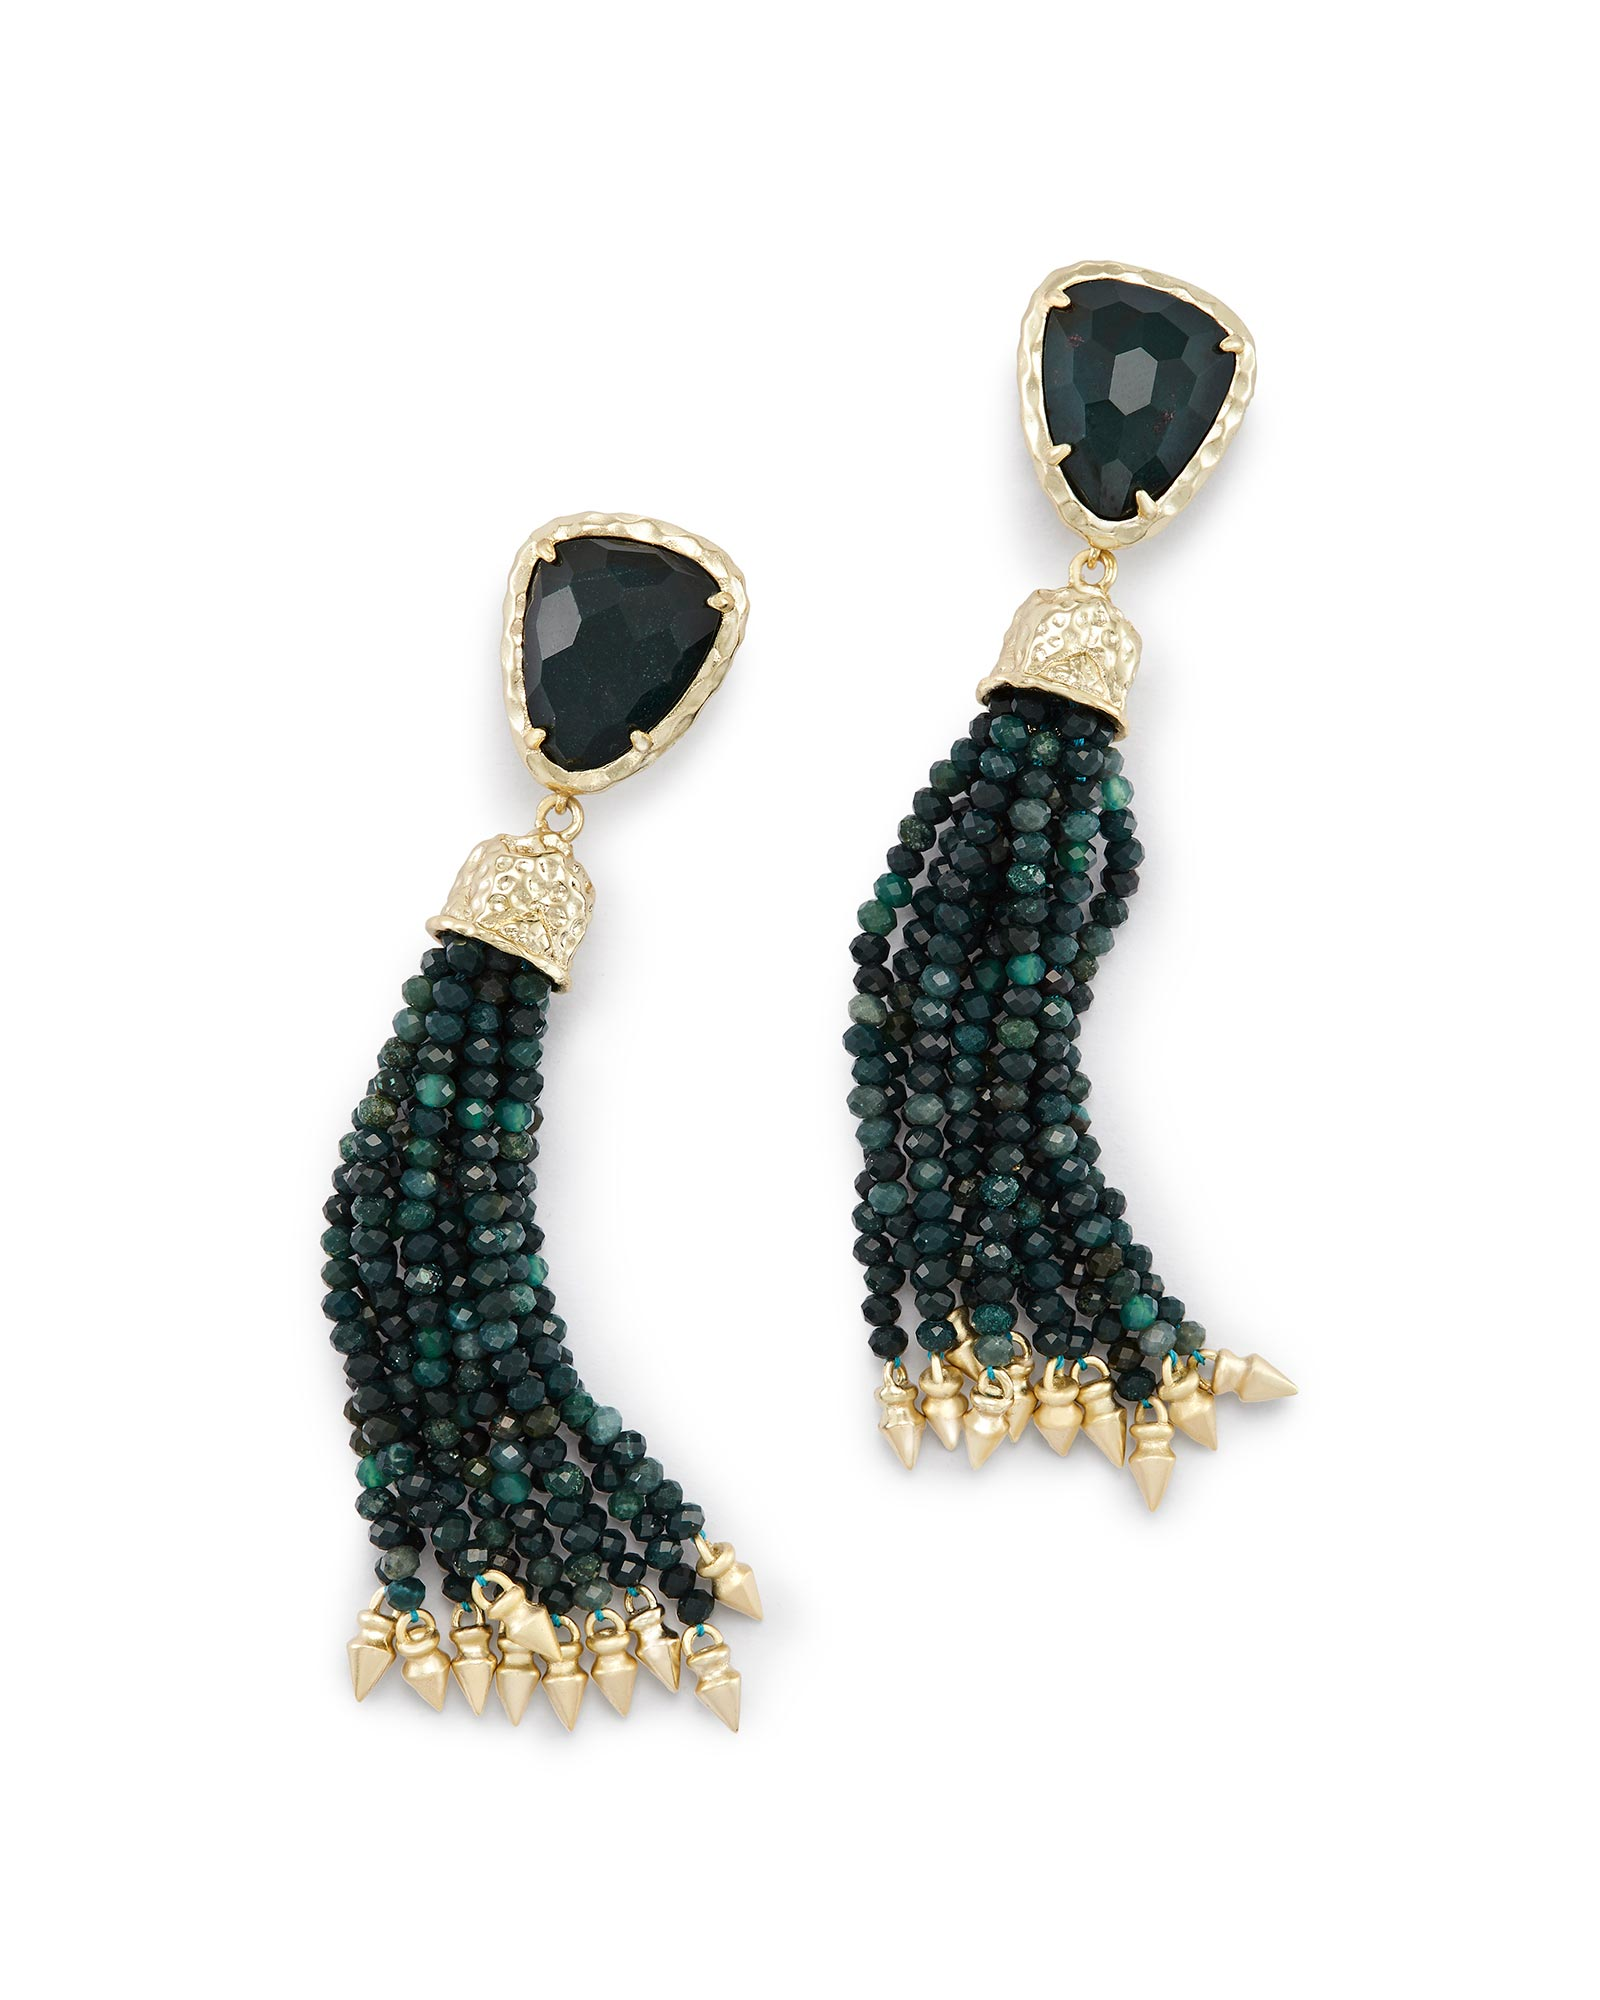 zenzii bead we earrings together tassle wholesale drop long tassel gry